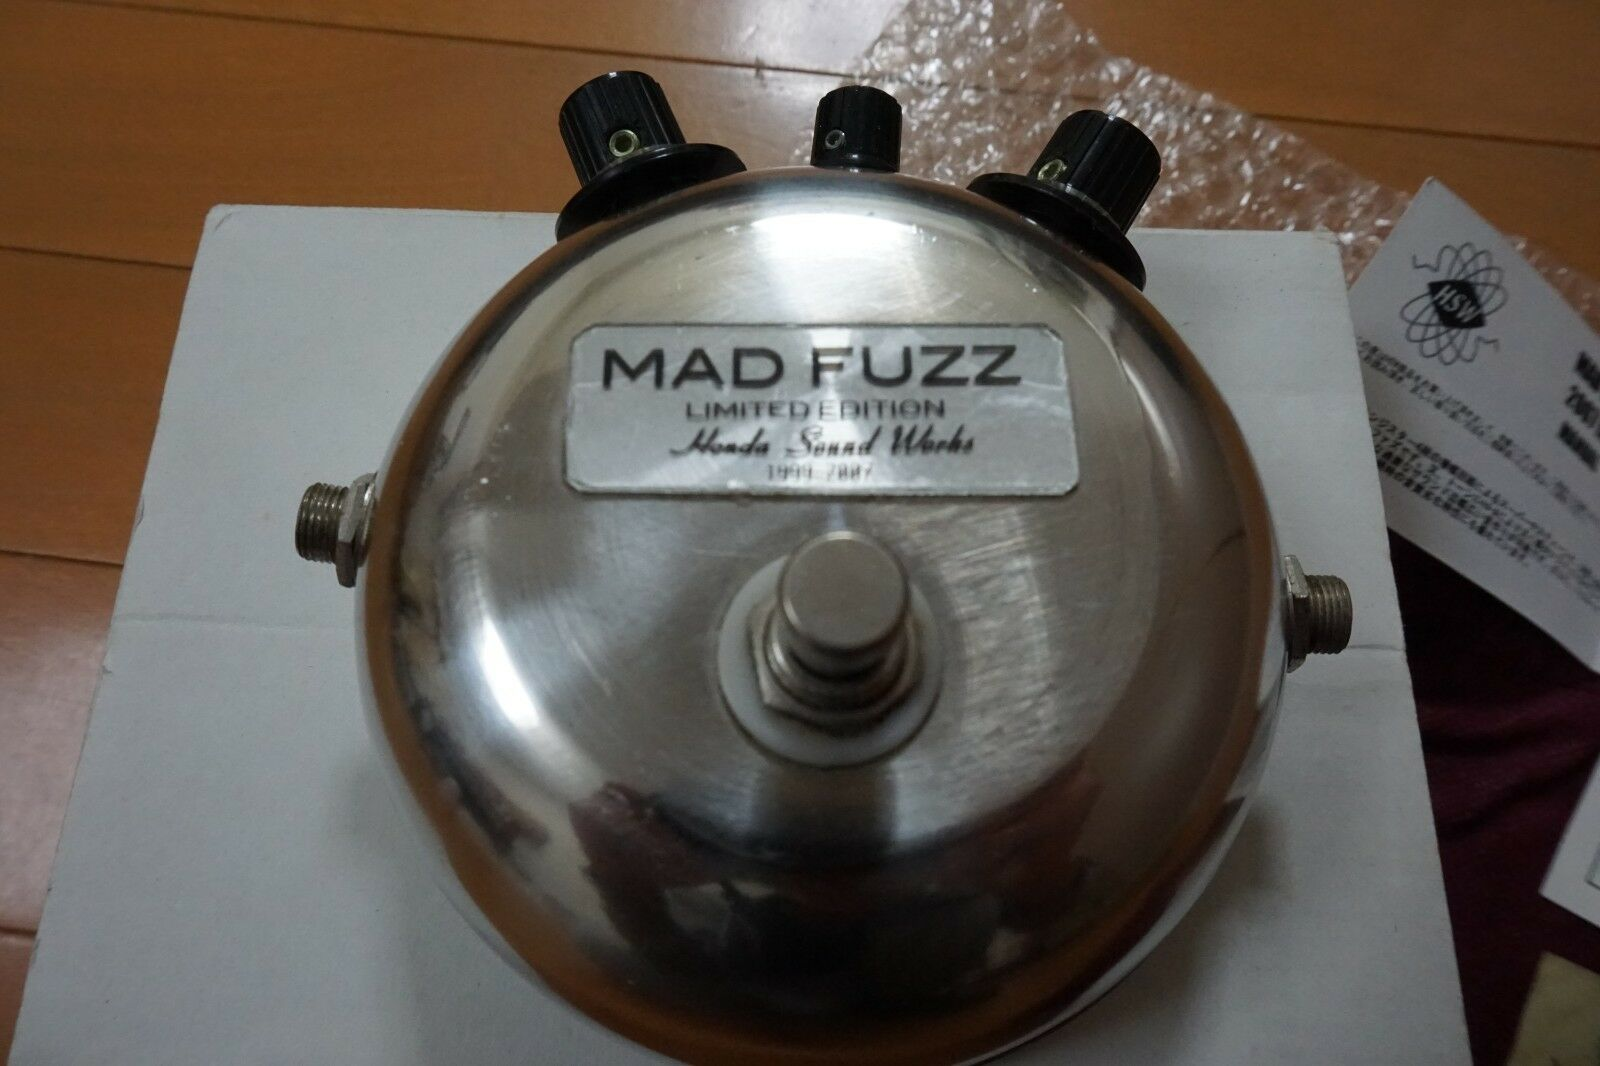 RARE HONDA SOUND WORKS MAD FUZZ 100 LIMITED EDITION S N 85 GUITAR EFFECT PEDAL